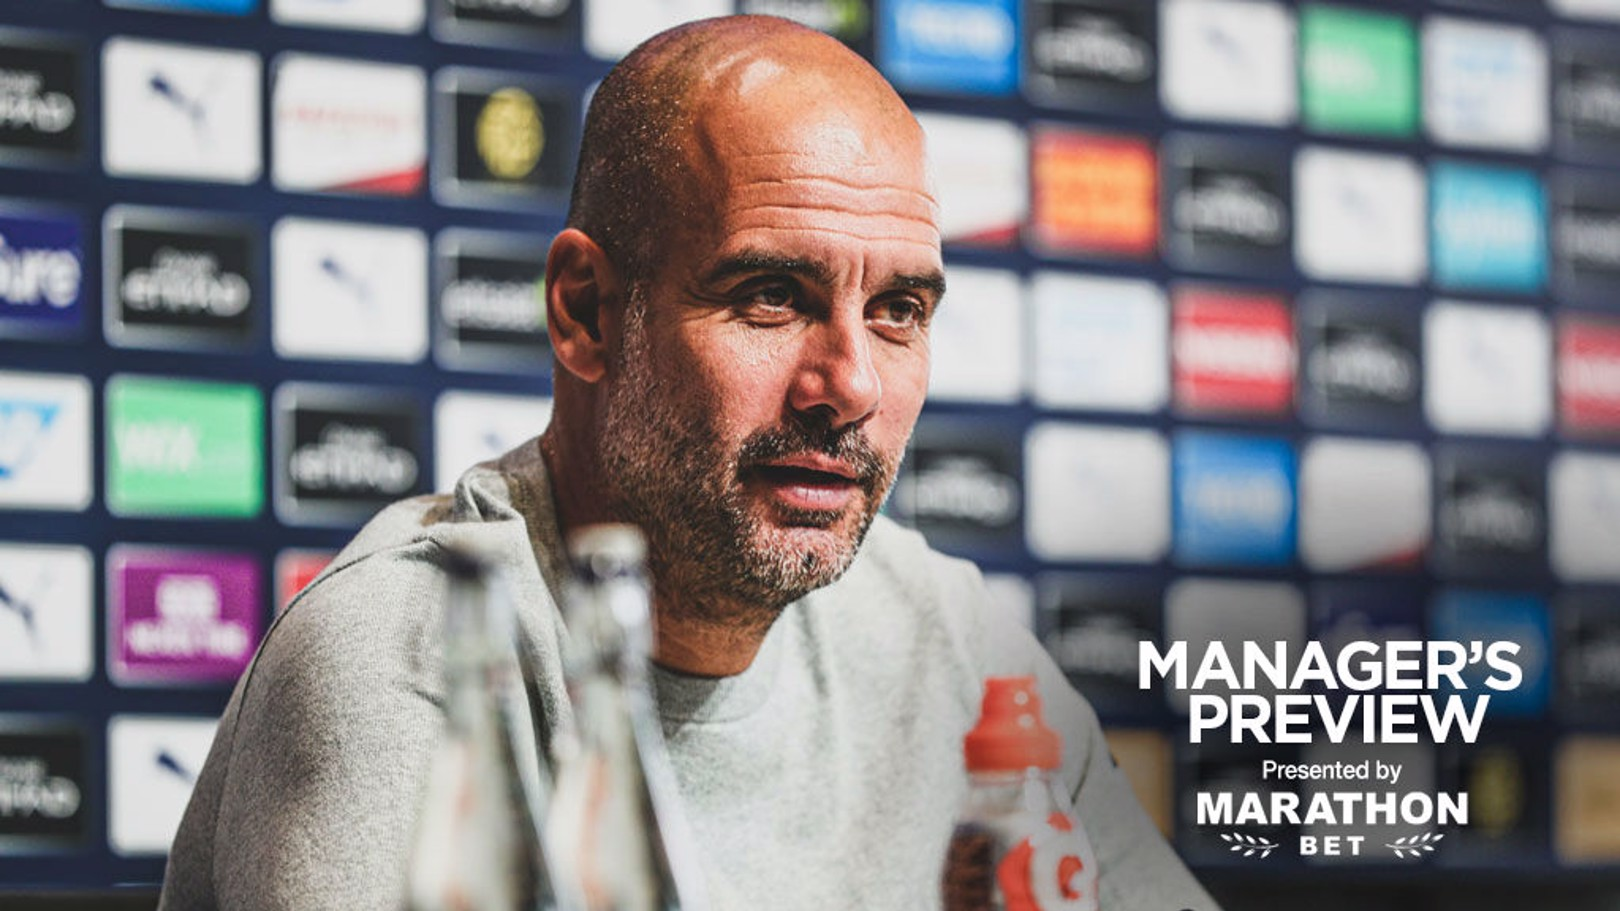 PEP TALK: The boss faced the press ahead of Sunday's game.